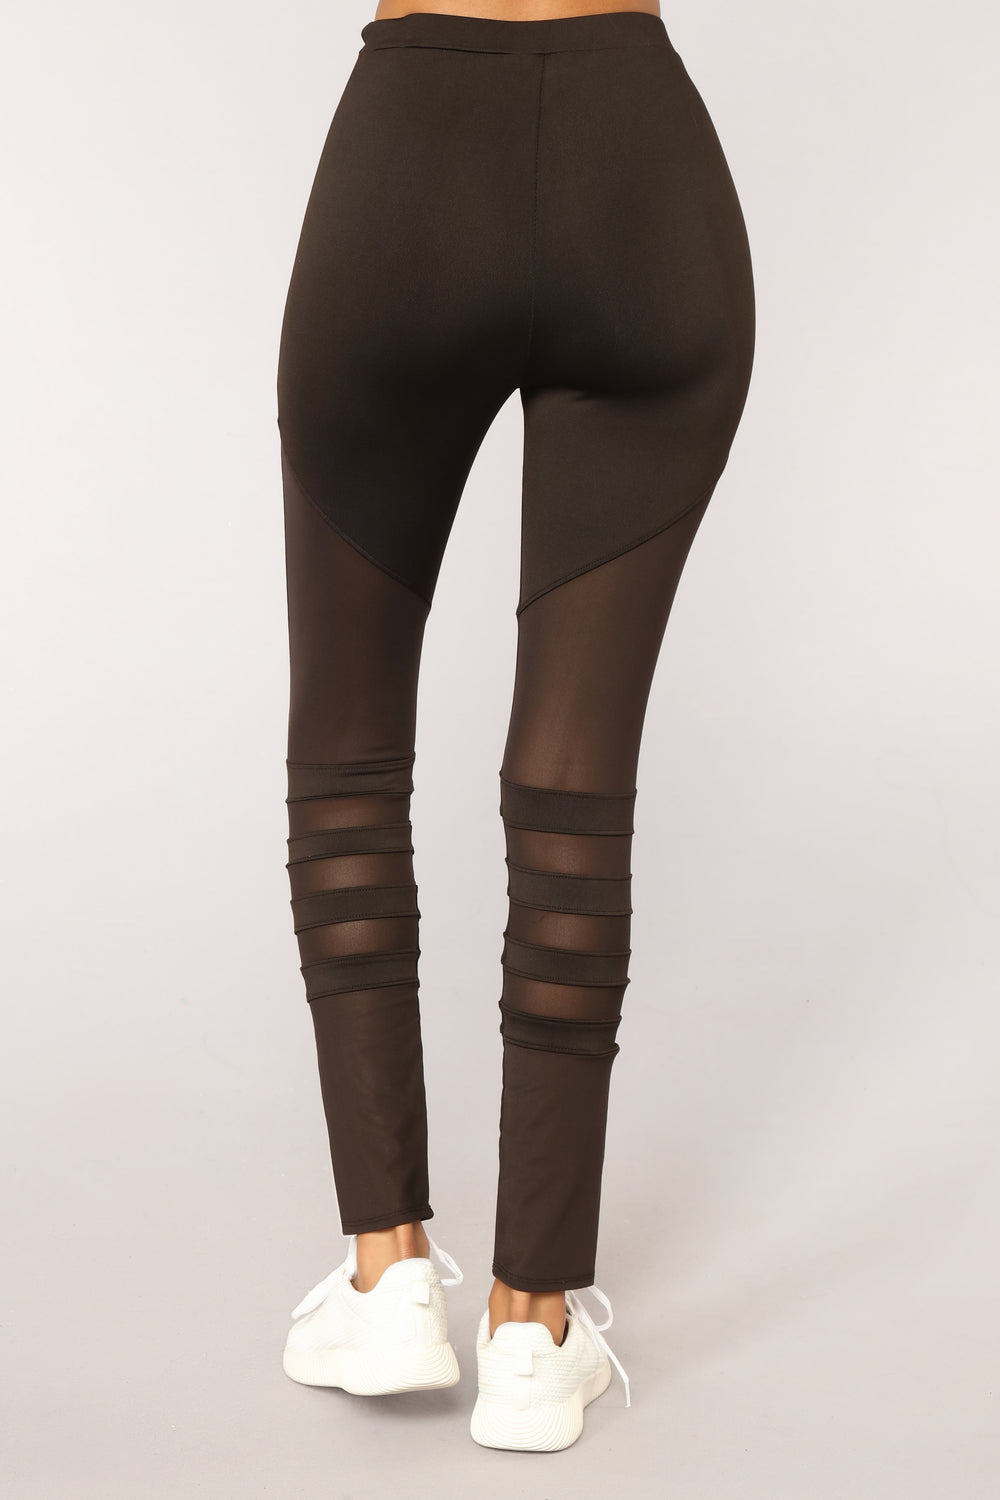 Keep Me Balanced Moto Mesh Leggings - Black